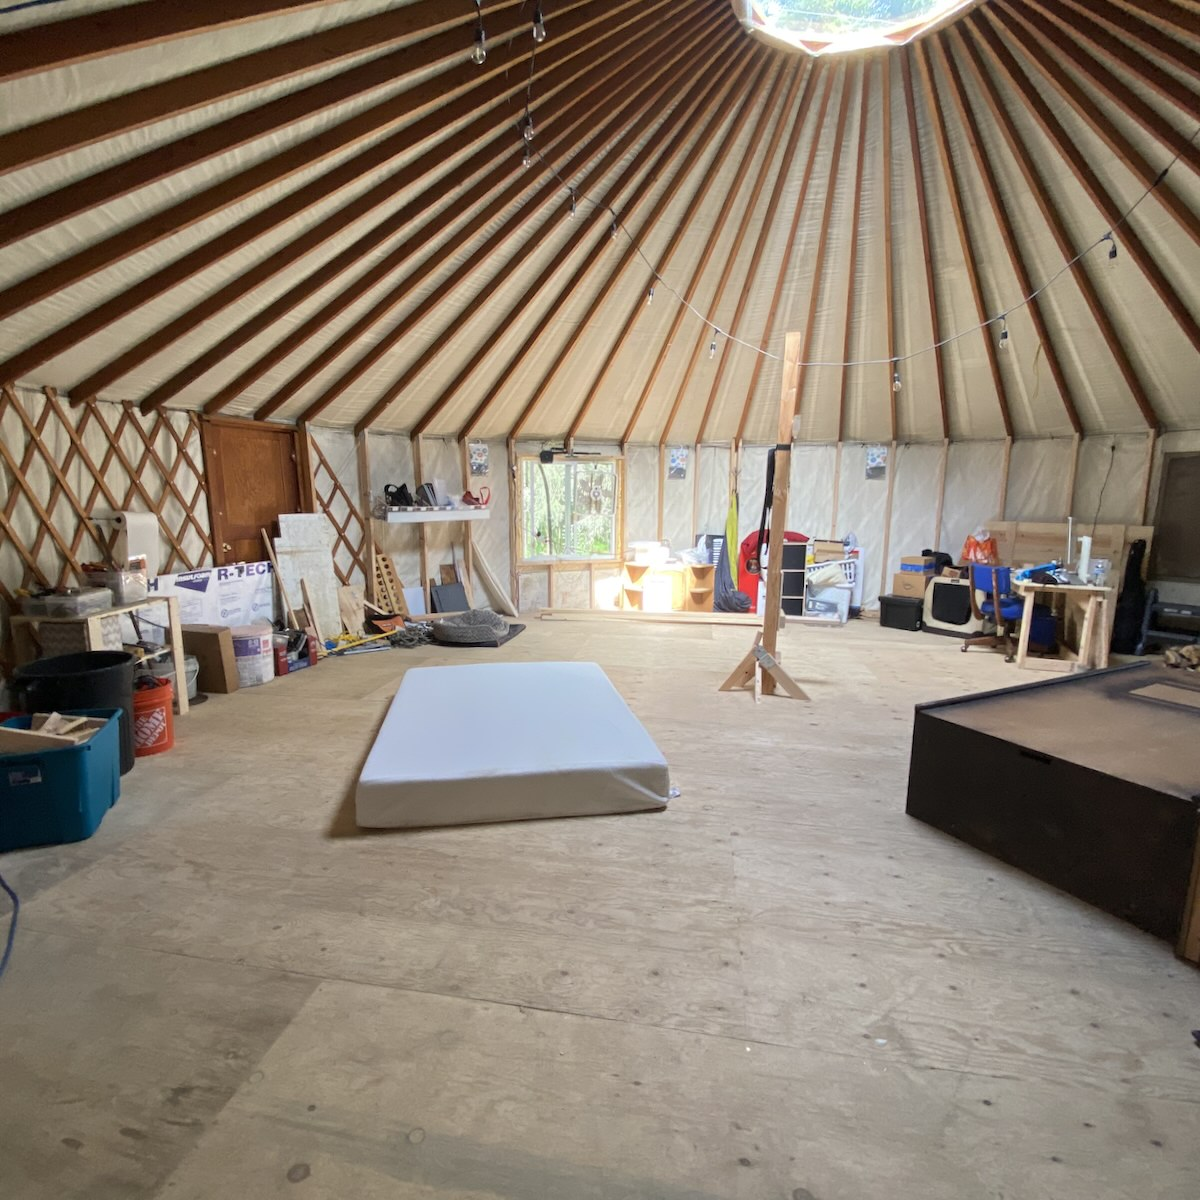 The interior of a large yurt with tools along the wall, a desk in the corner, and a mattress on the floor